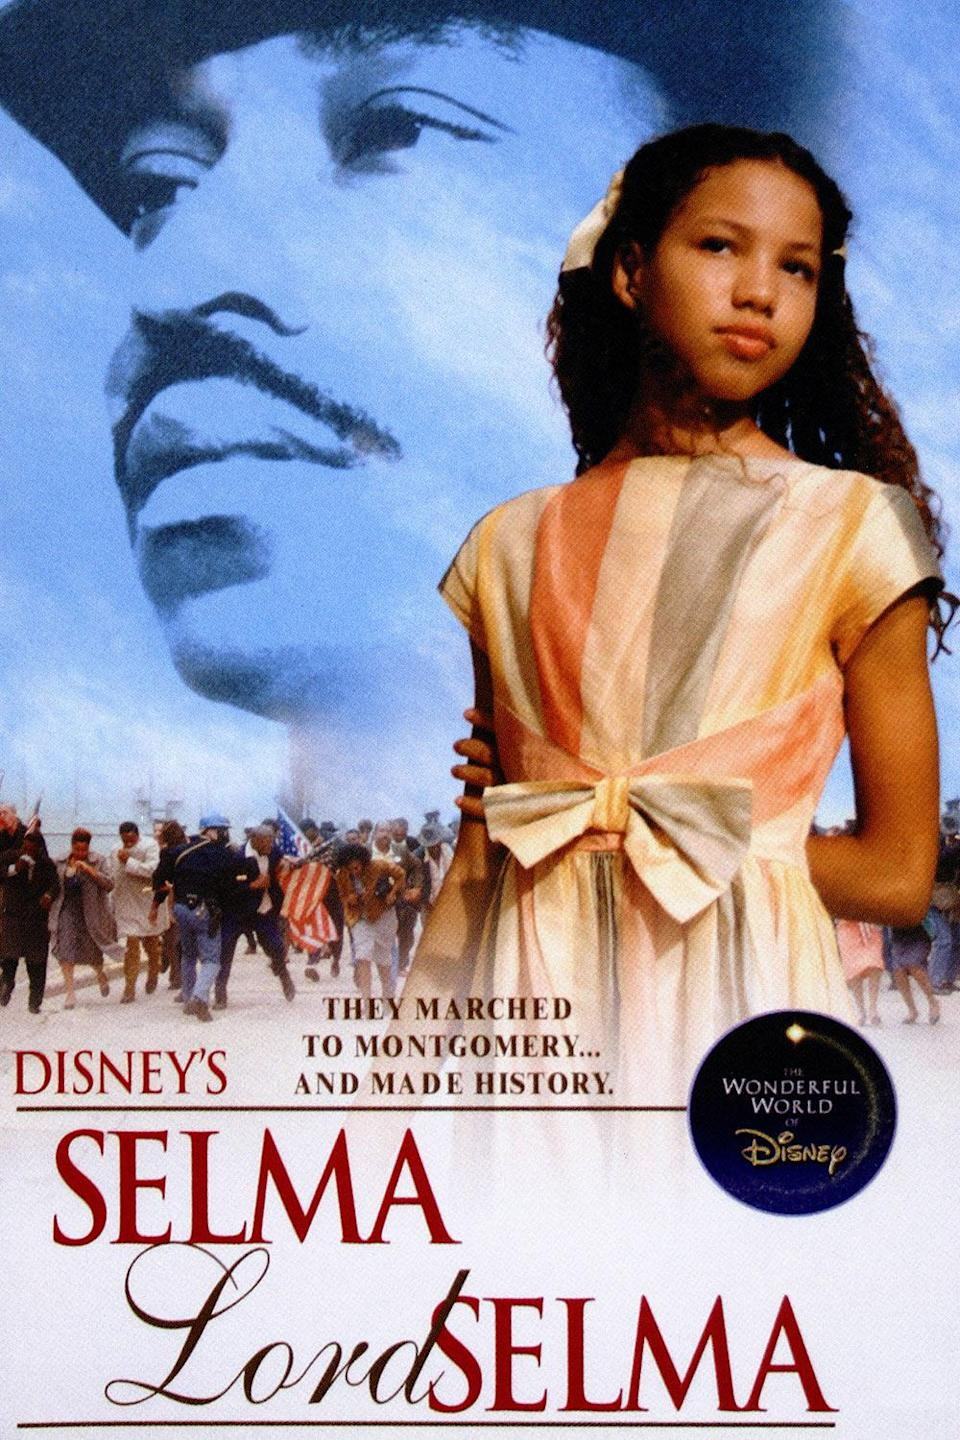 <p>Disney's 1999 TV movie <em>Selma, Lord, Selma </em>featured Powell as the legendary activist and orator. </p>